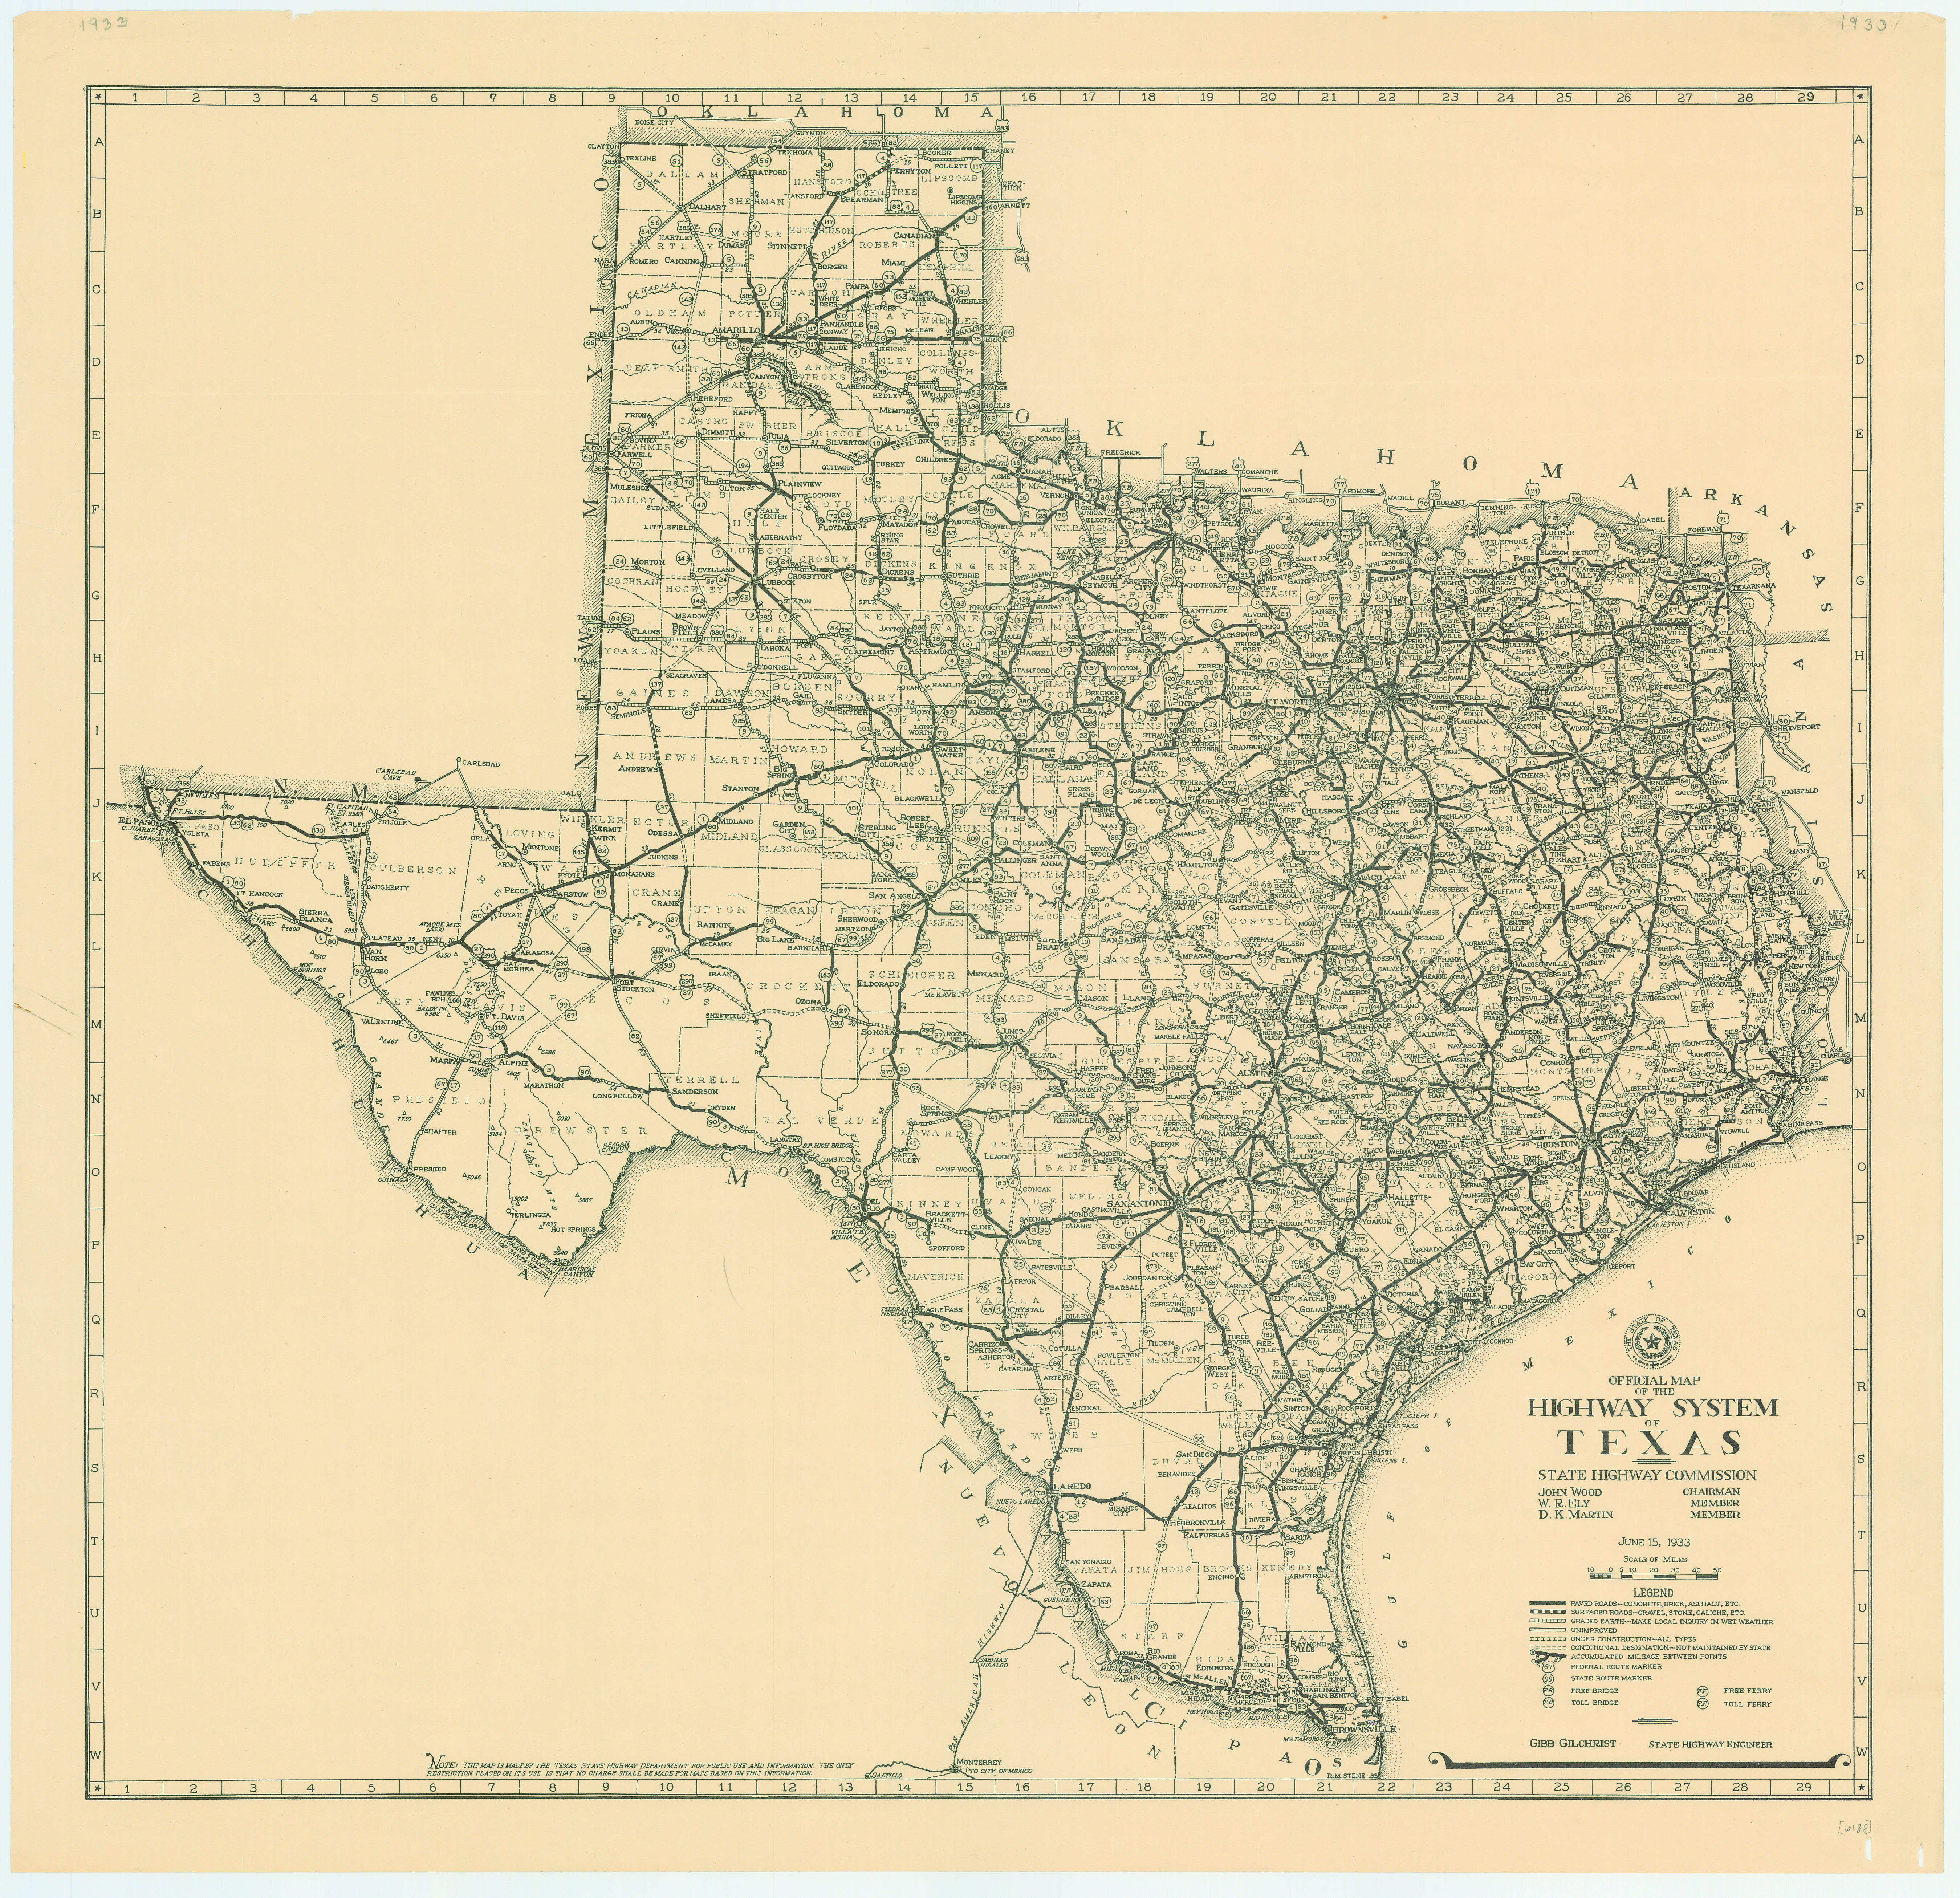 File:1933 Texas State Highway Map - Wikimedia Commons - Old Texas Map